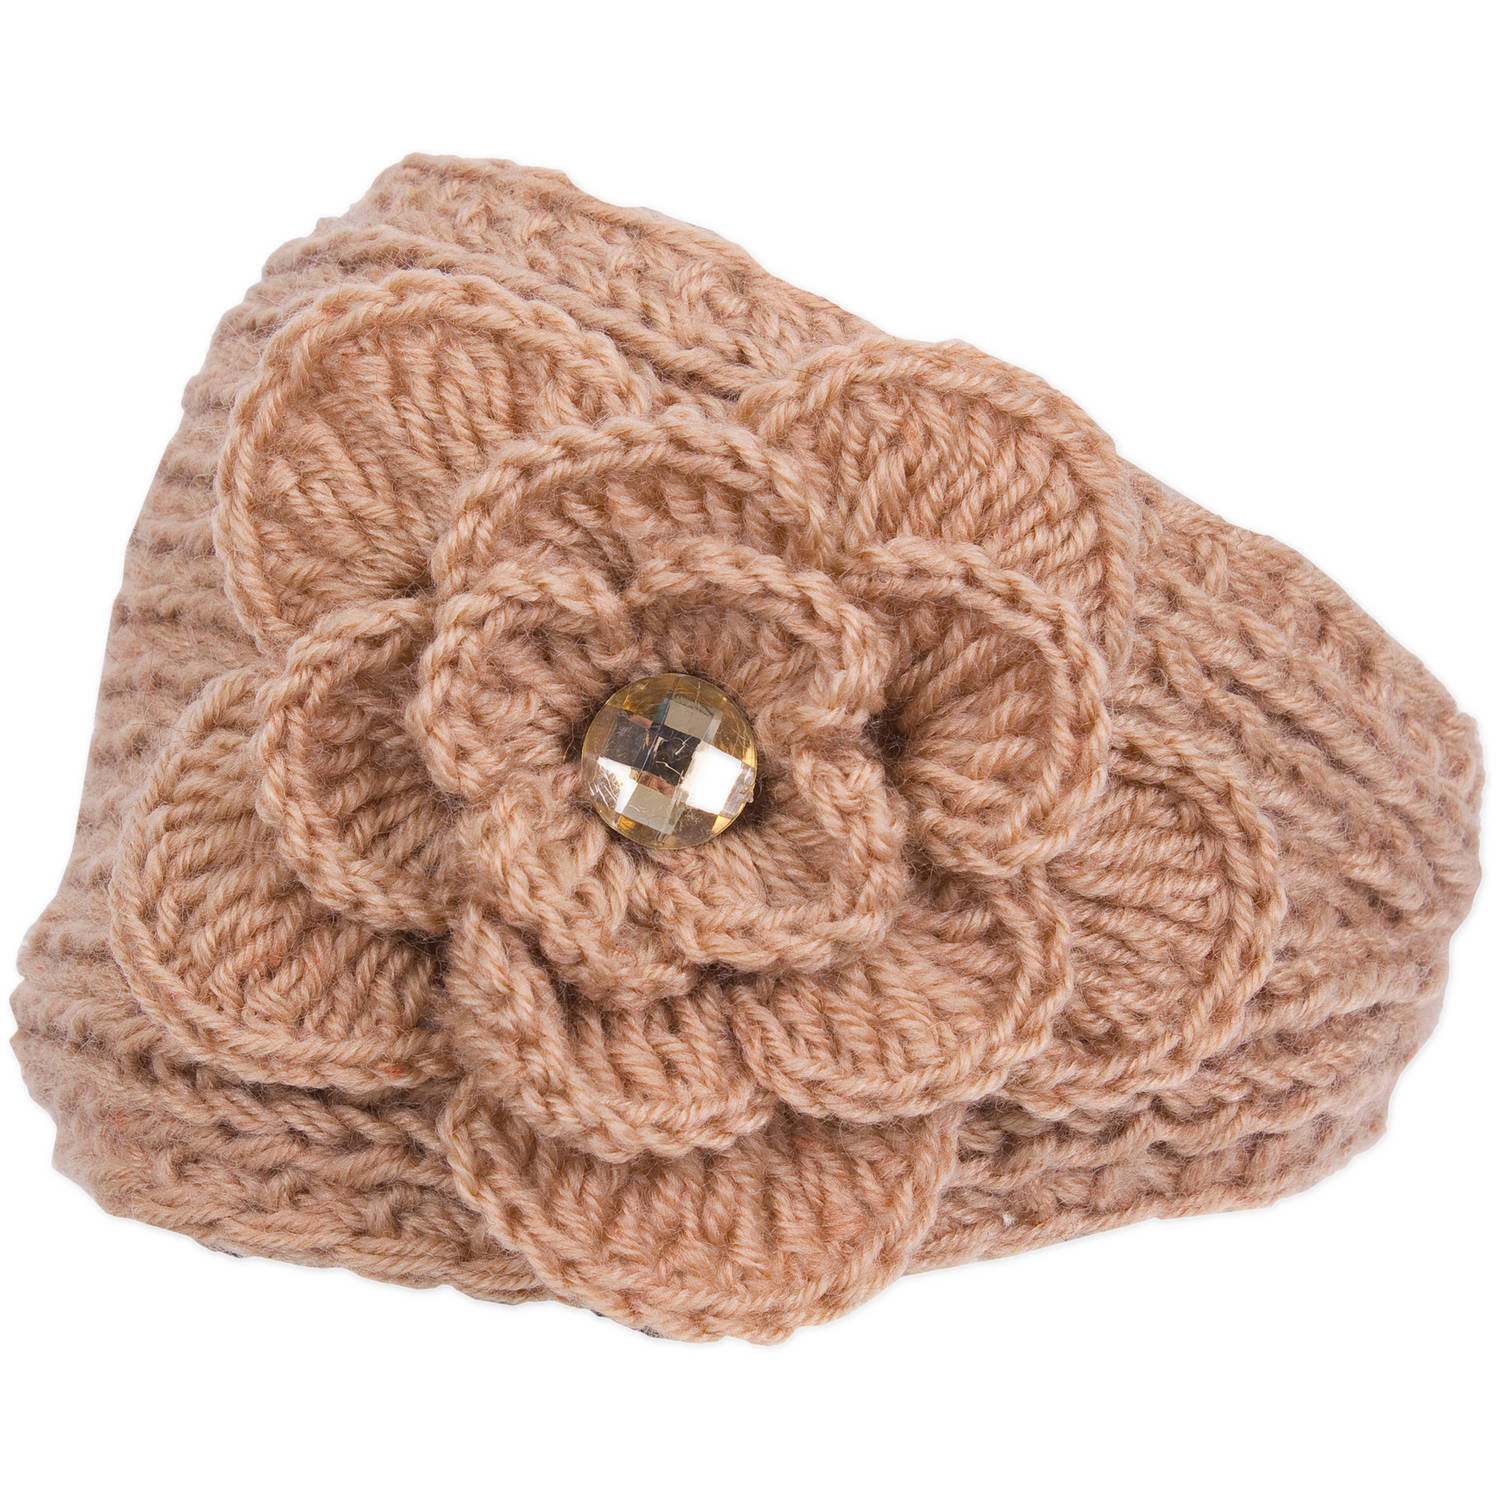 Magid Headwrap with Flower & Rhinestone, Camel